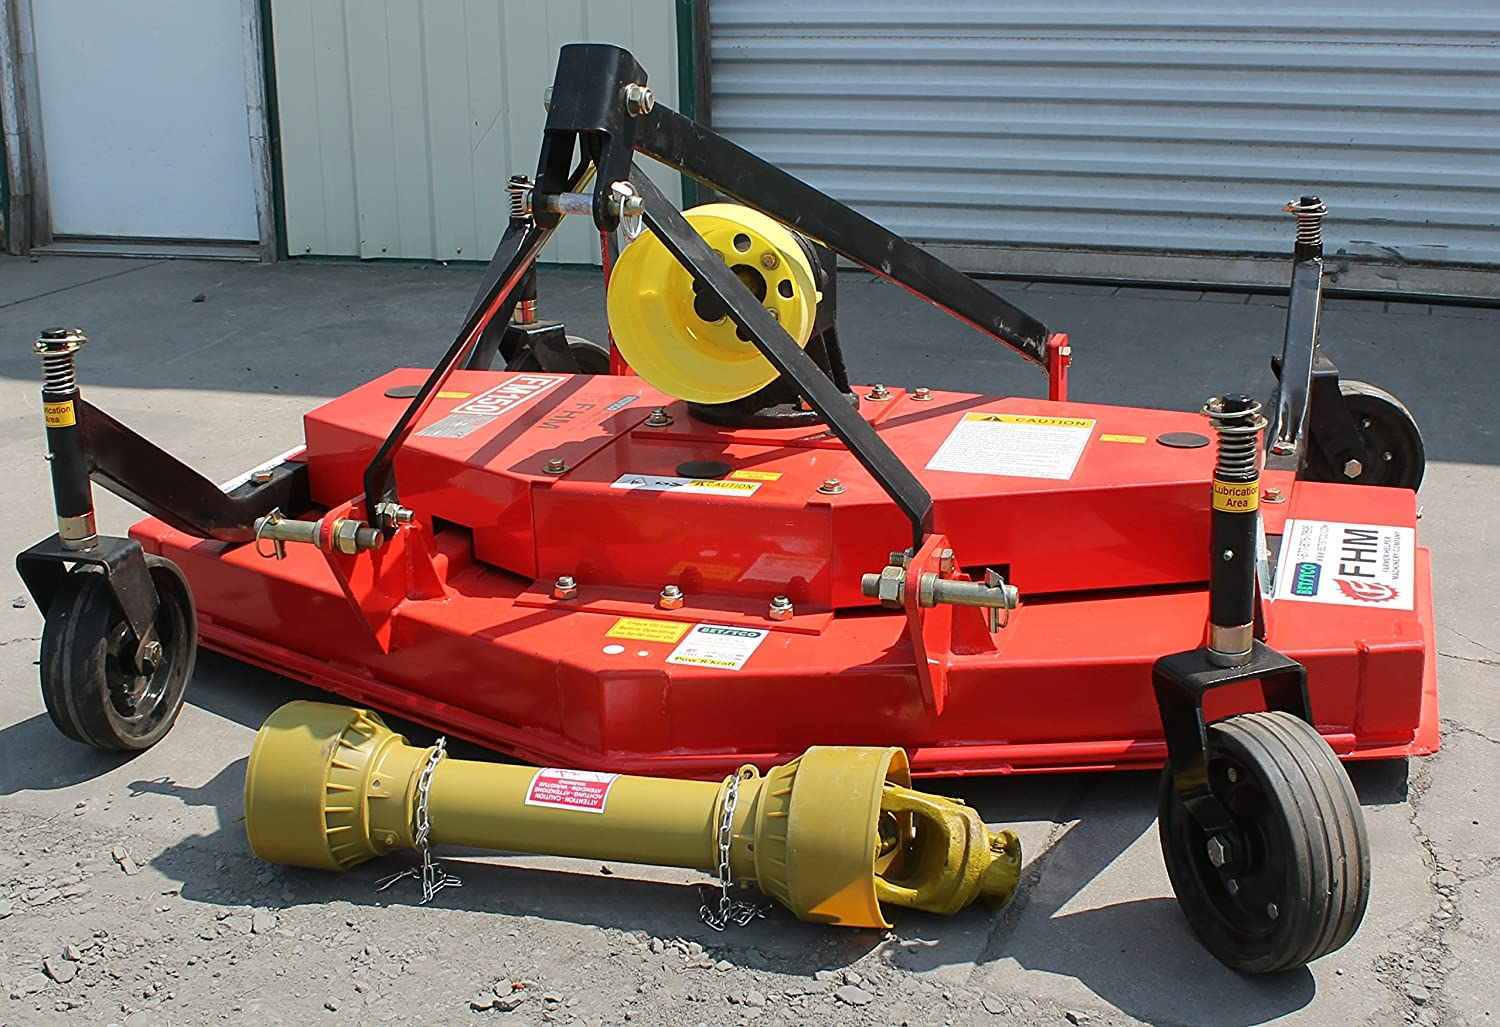 Farmer Helper 5 Foot Finish Mower Cat.I 3pt 16 HP Rating FH-FM150